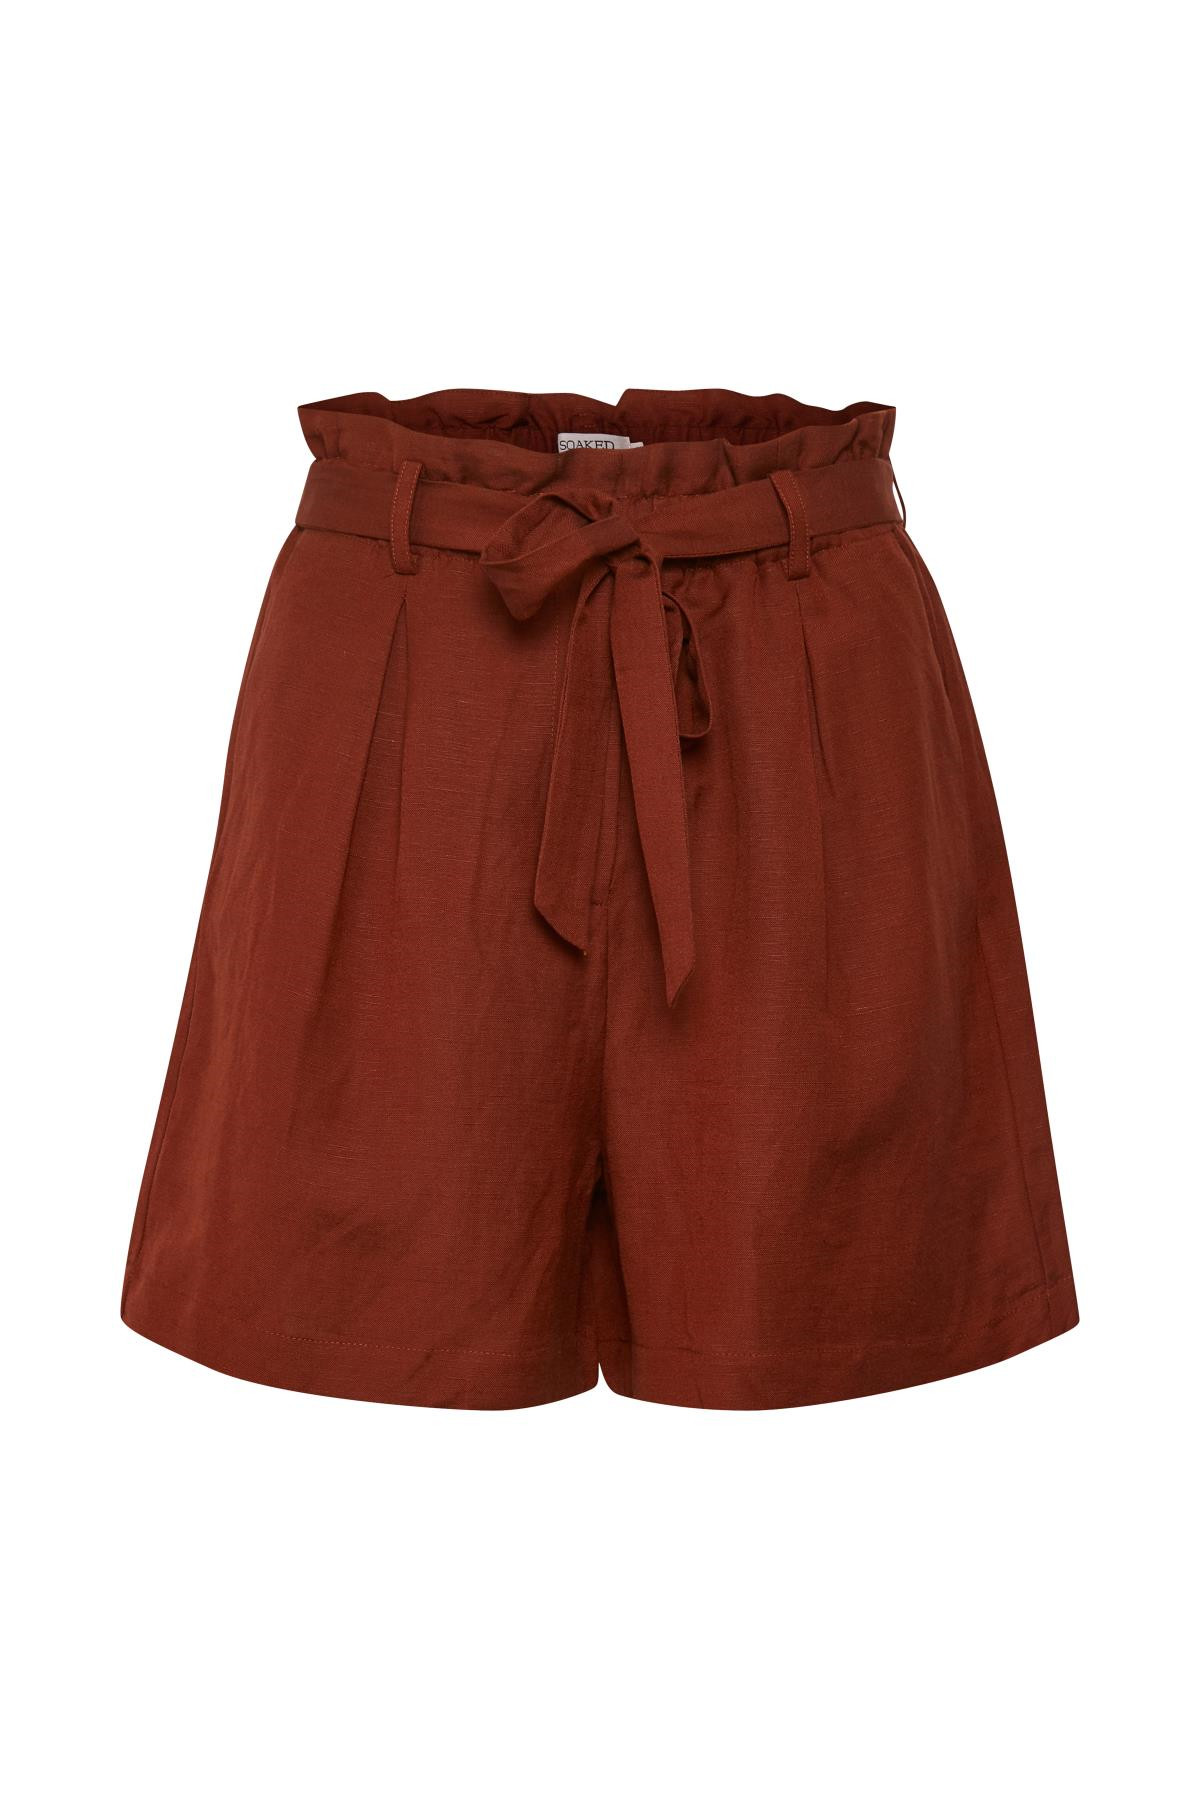 Image of   SOAKED IN LUXURY SL FAYETTE SHORTS 30404040 (Fired Brick 47021, M)